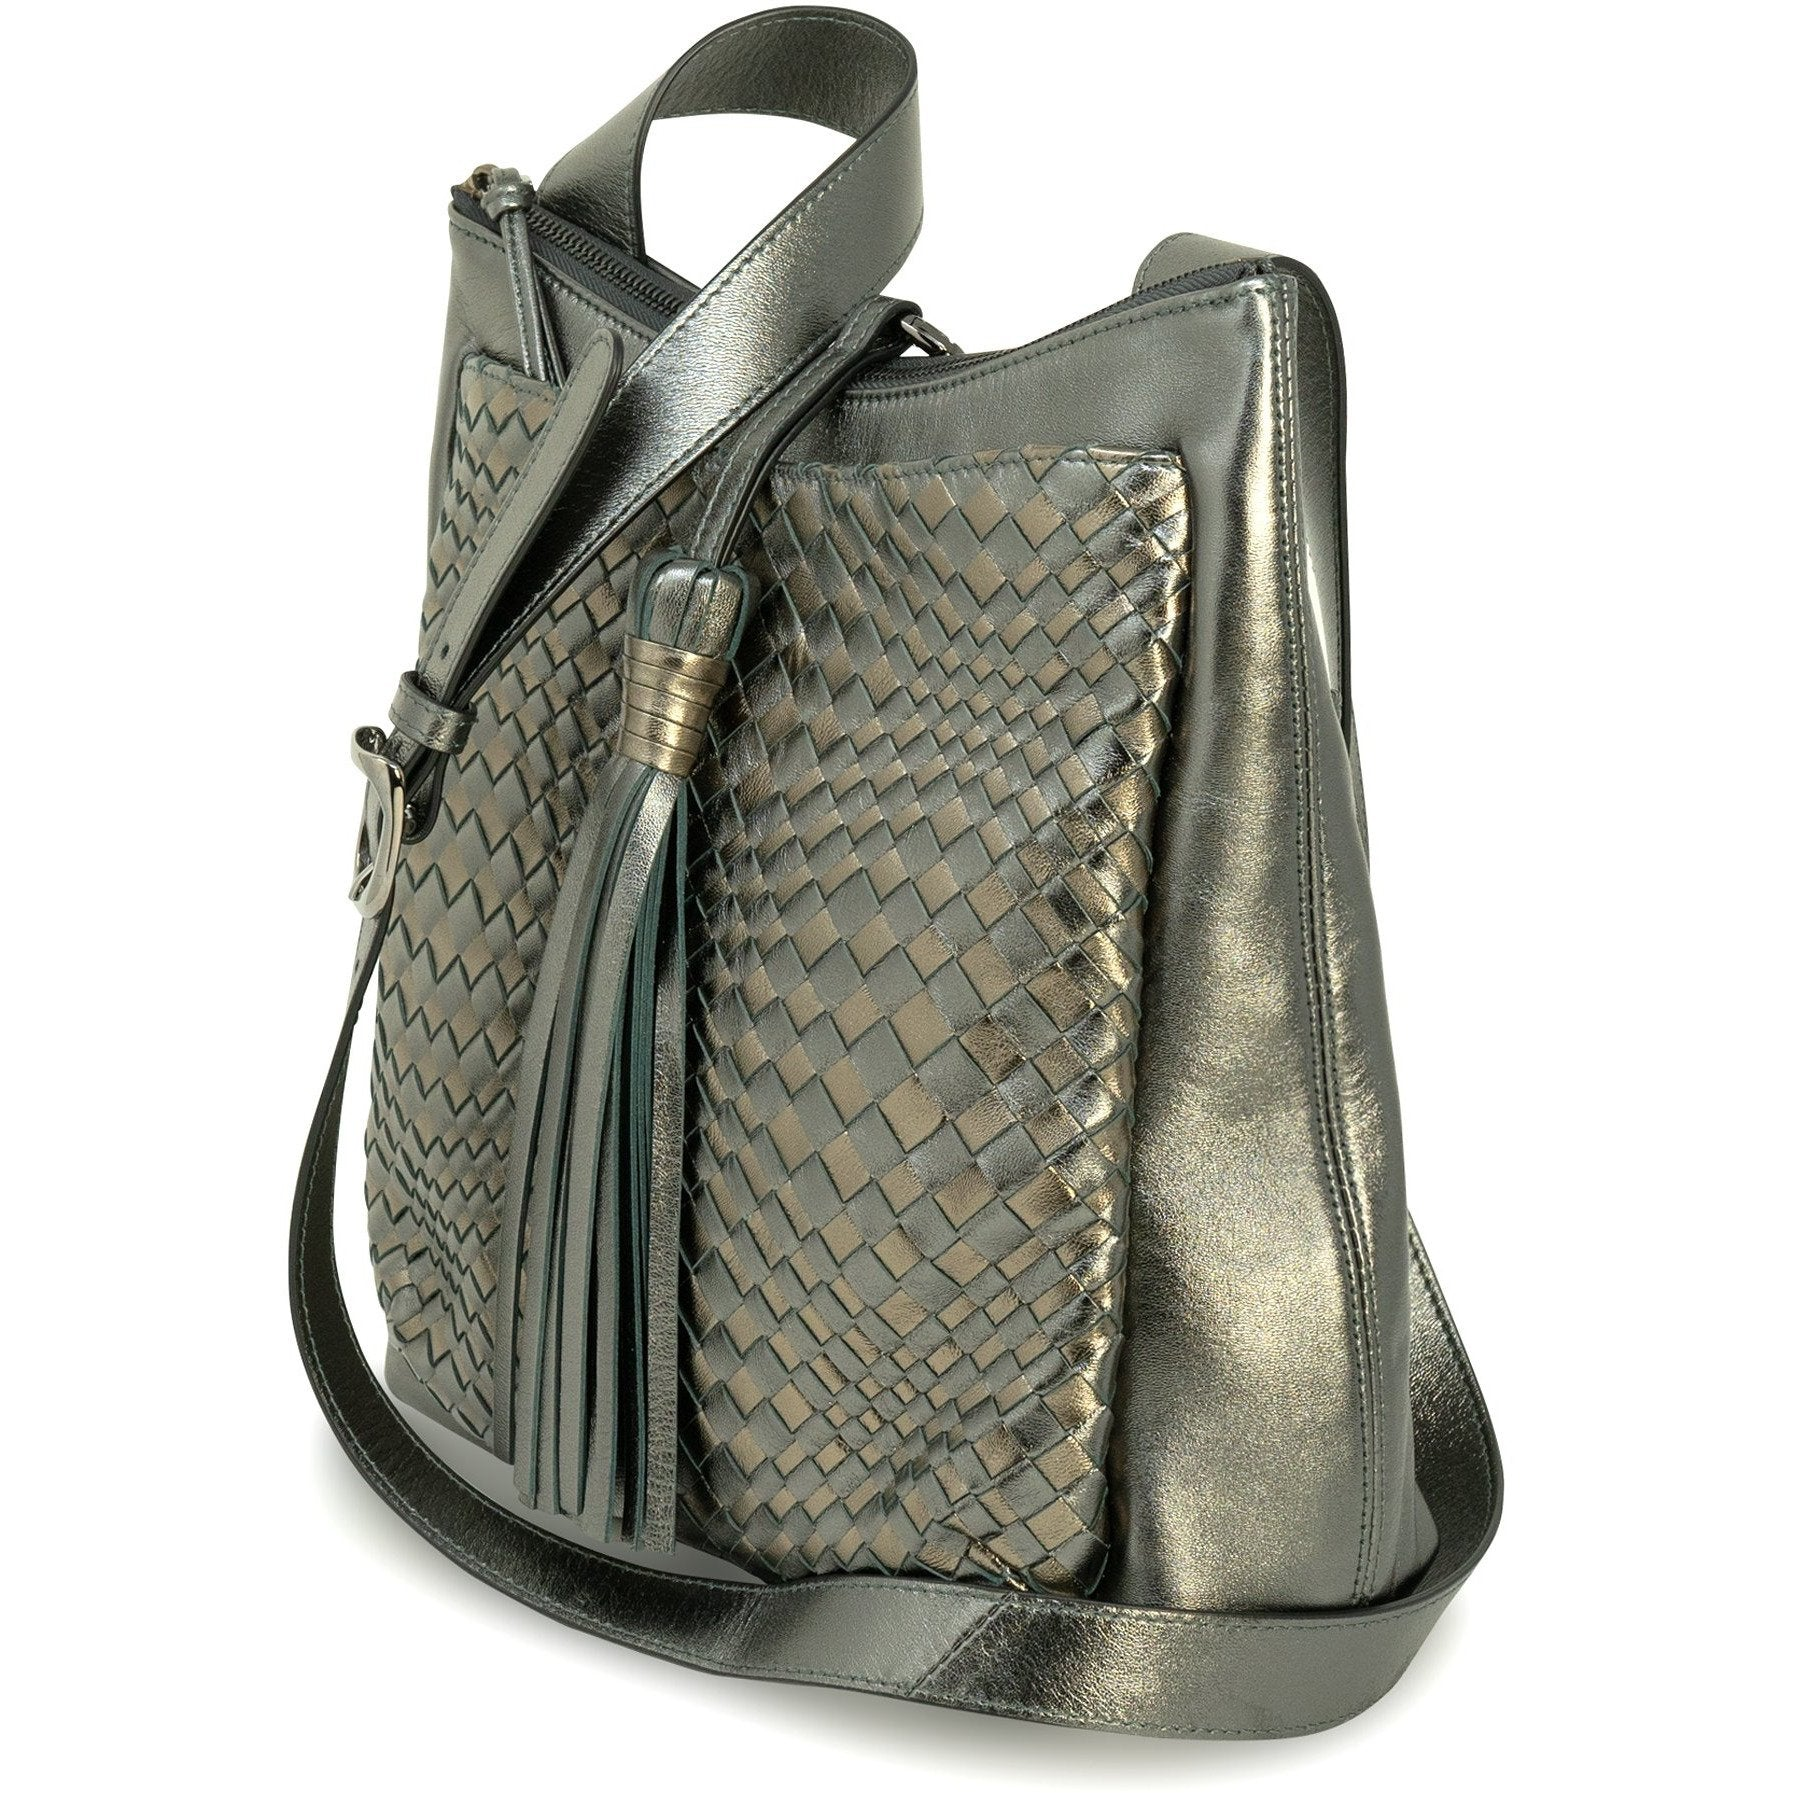 GINGER Women Intrecciato Leather Crossbody Bag in Gun Metal and Bronze - Jennifer Tattanelli